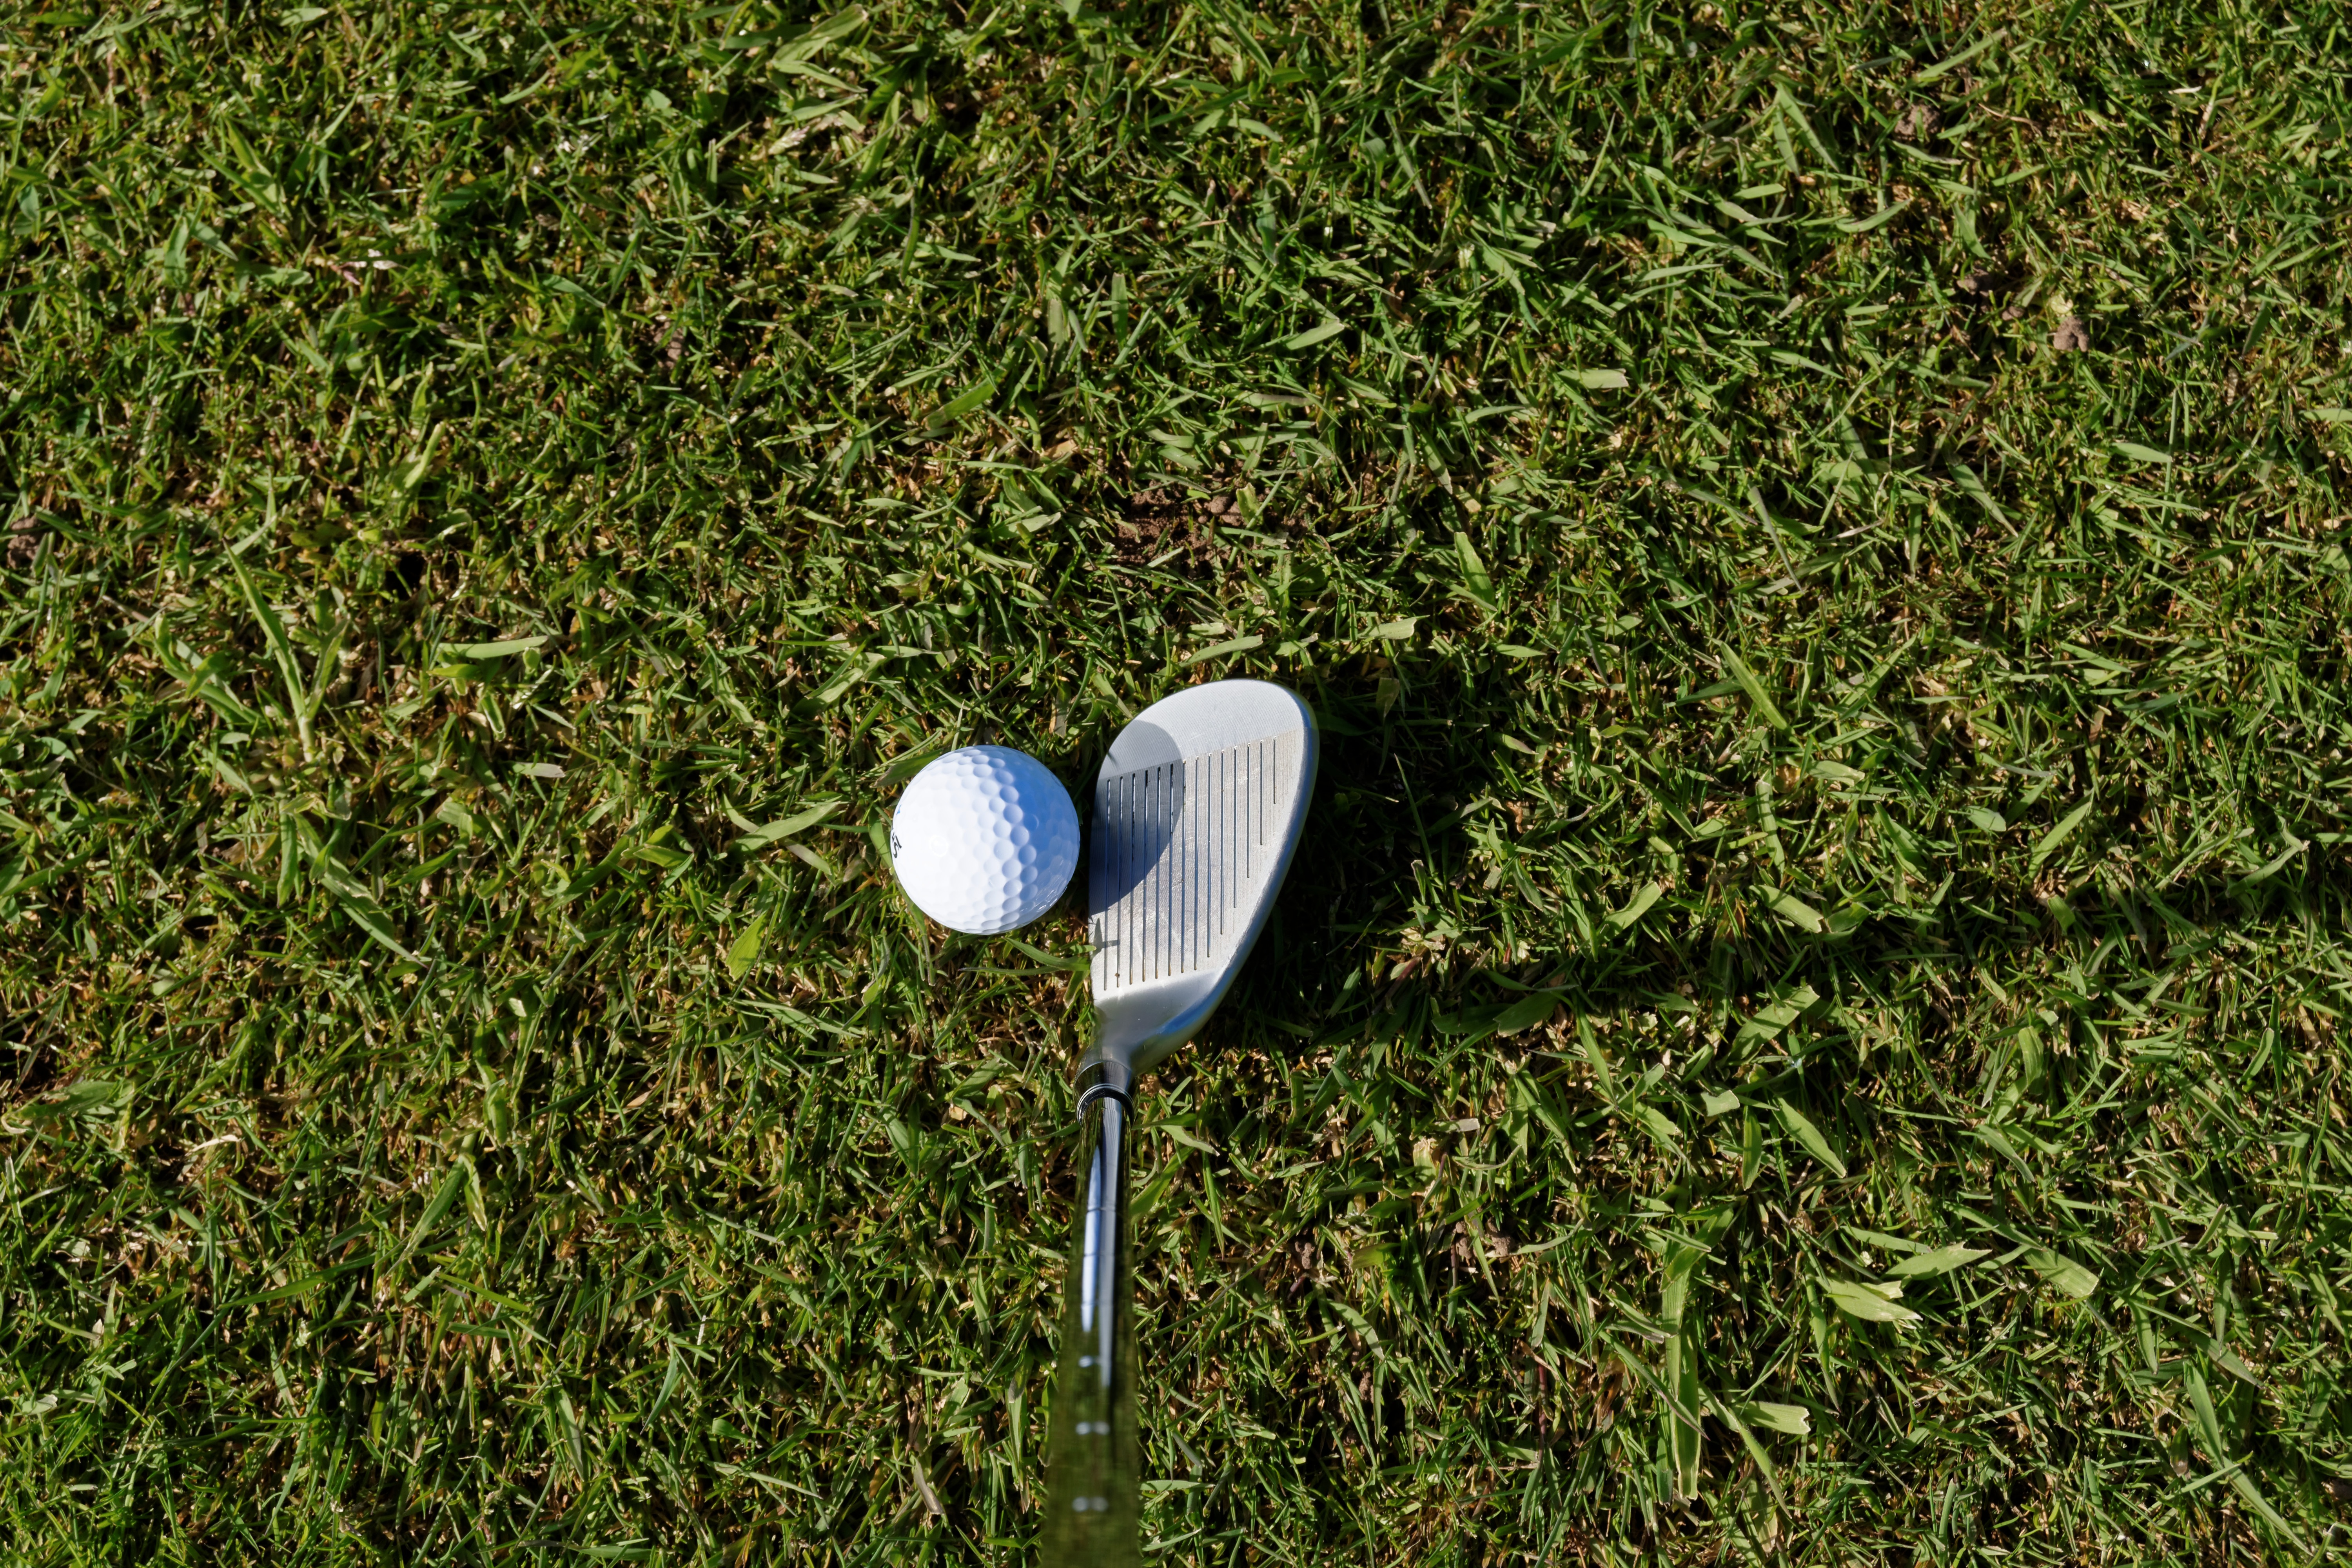 White Ball And Golf Club Free Image